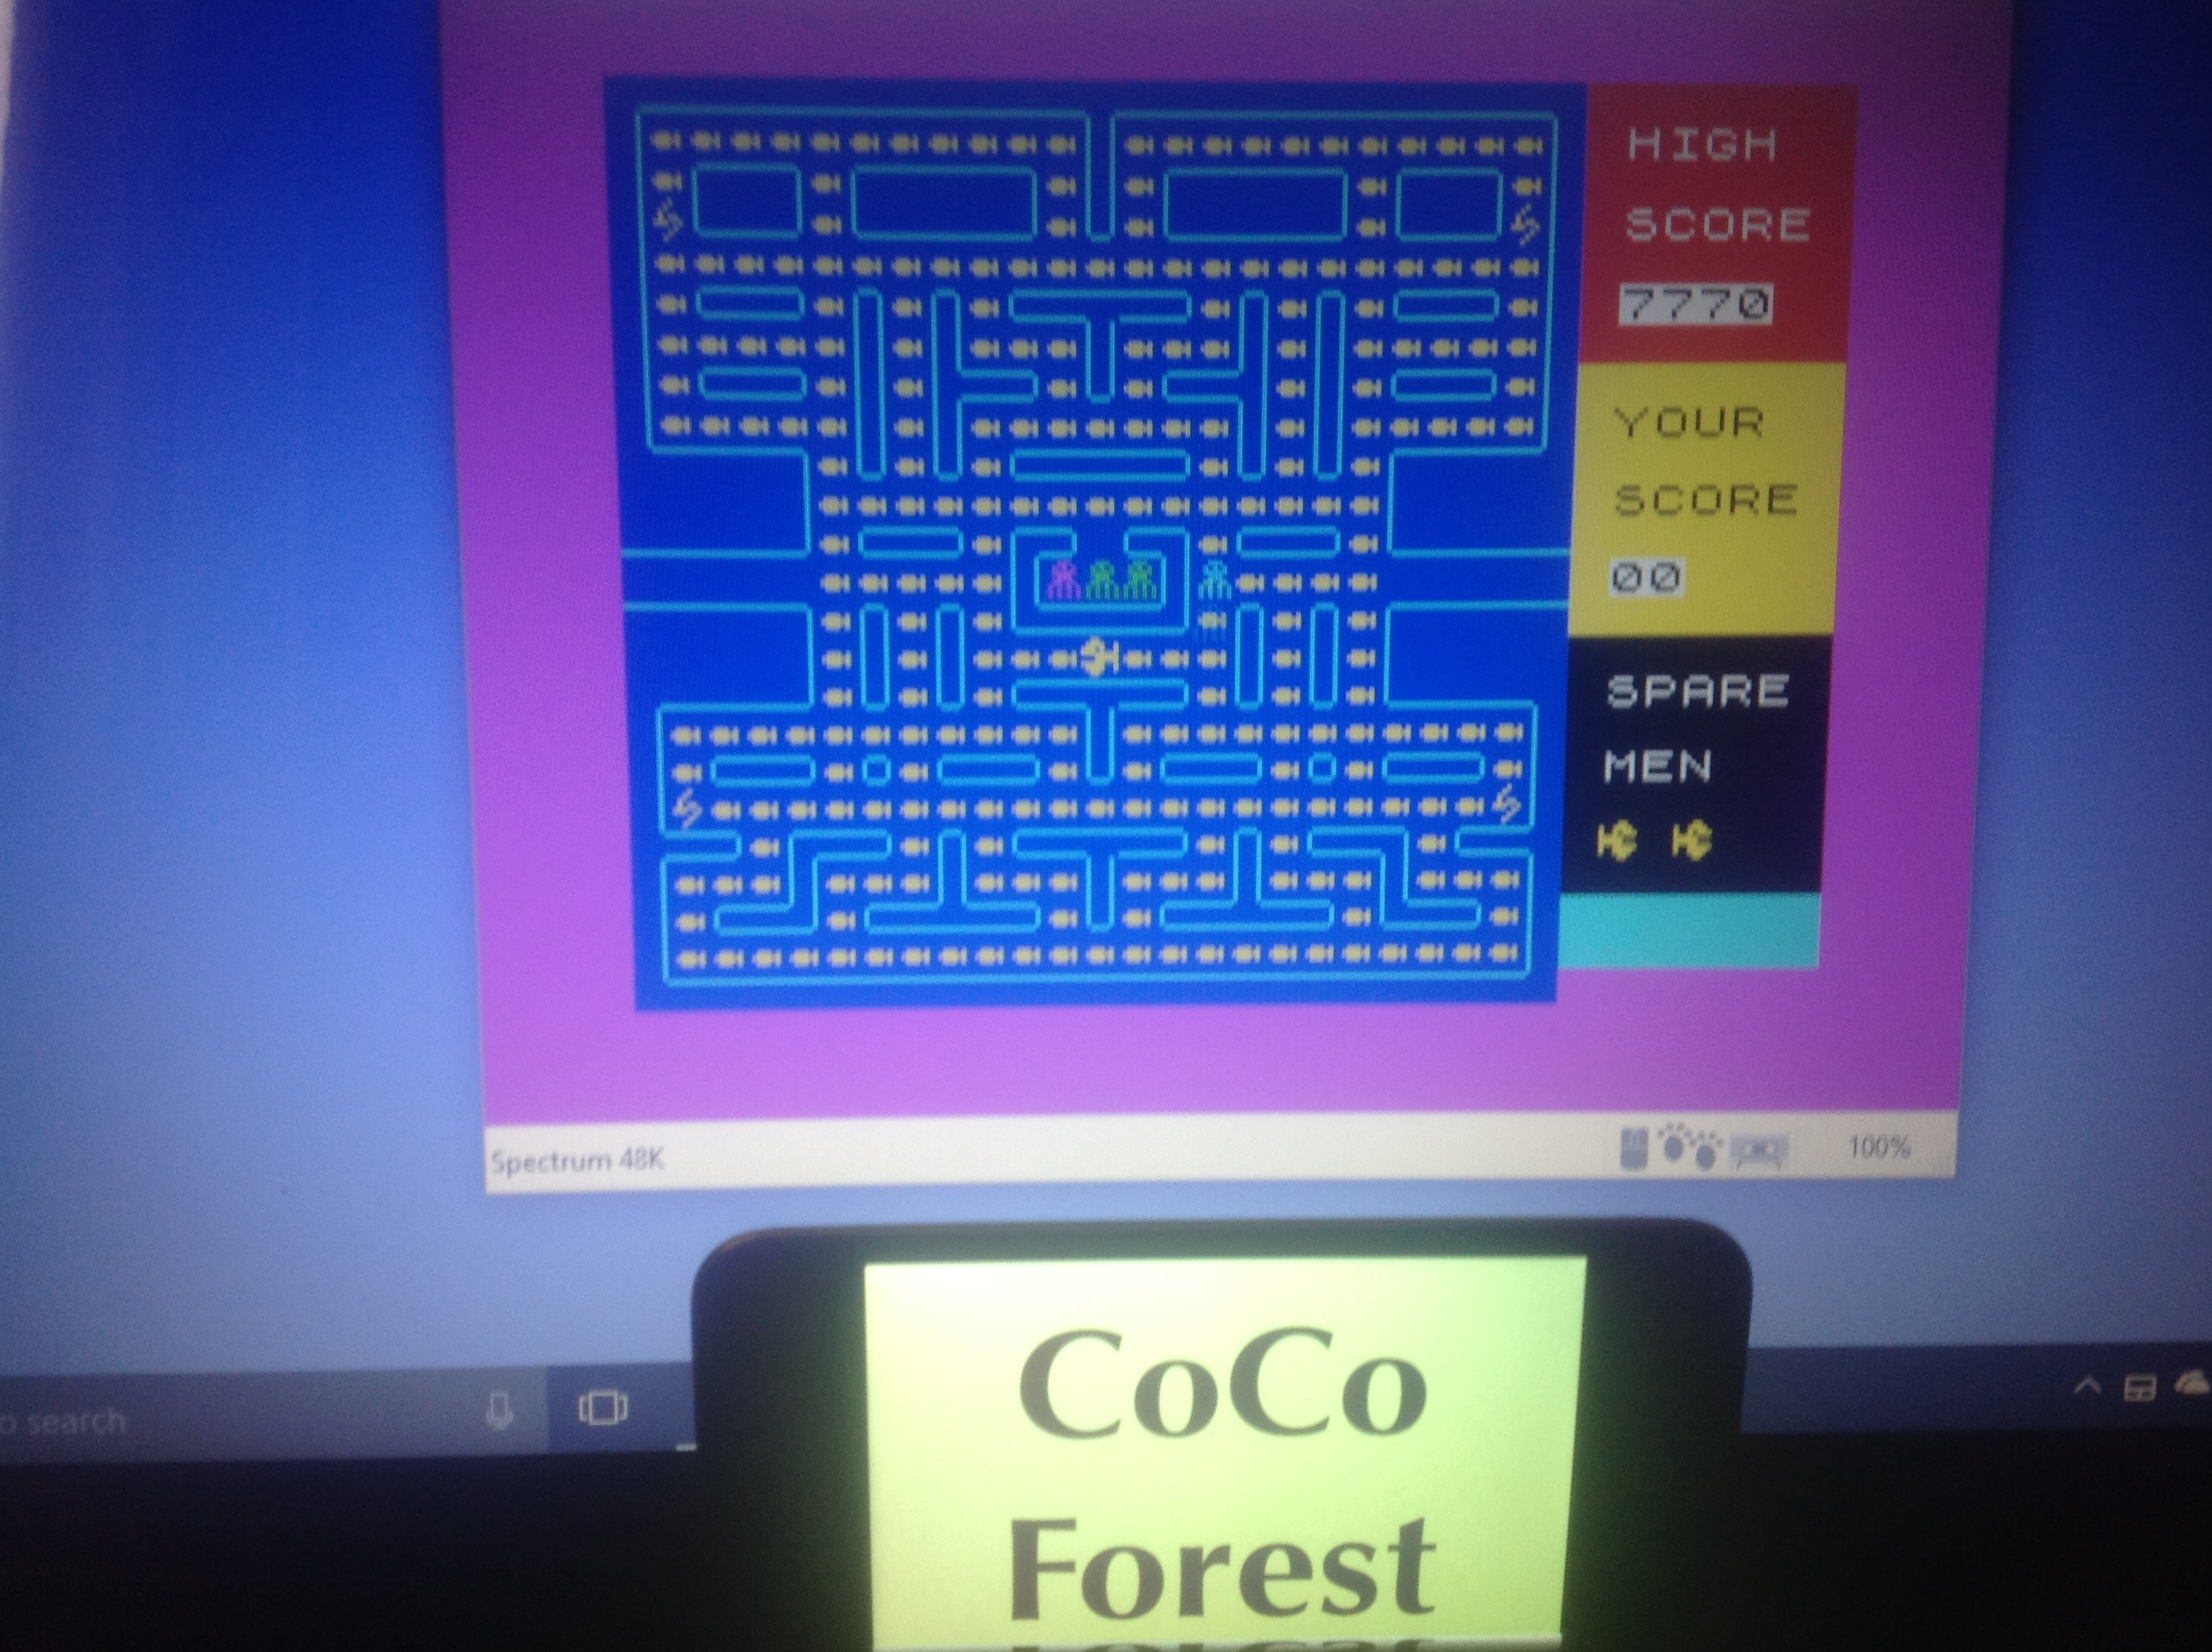 CoCoForest: Pakacuda (ZX Spectrum Emulated) 7,770 points on 2018-01-17 07:32:44